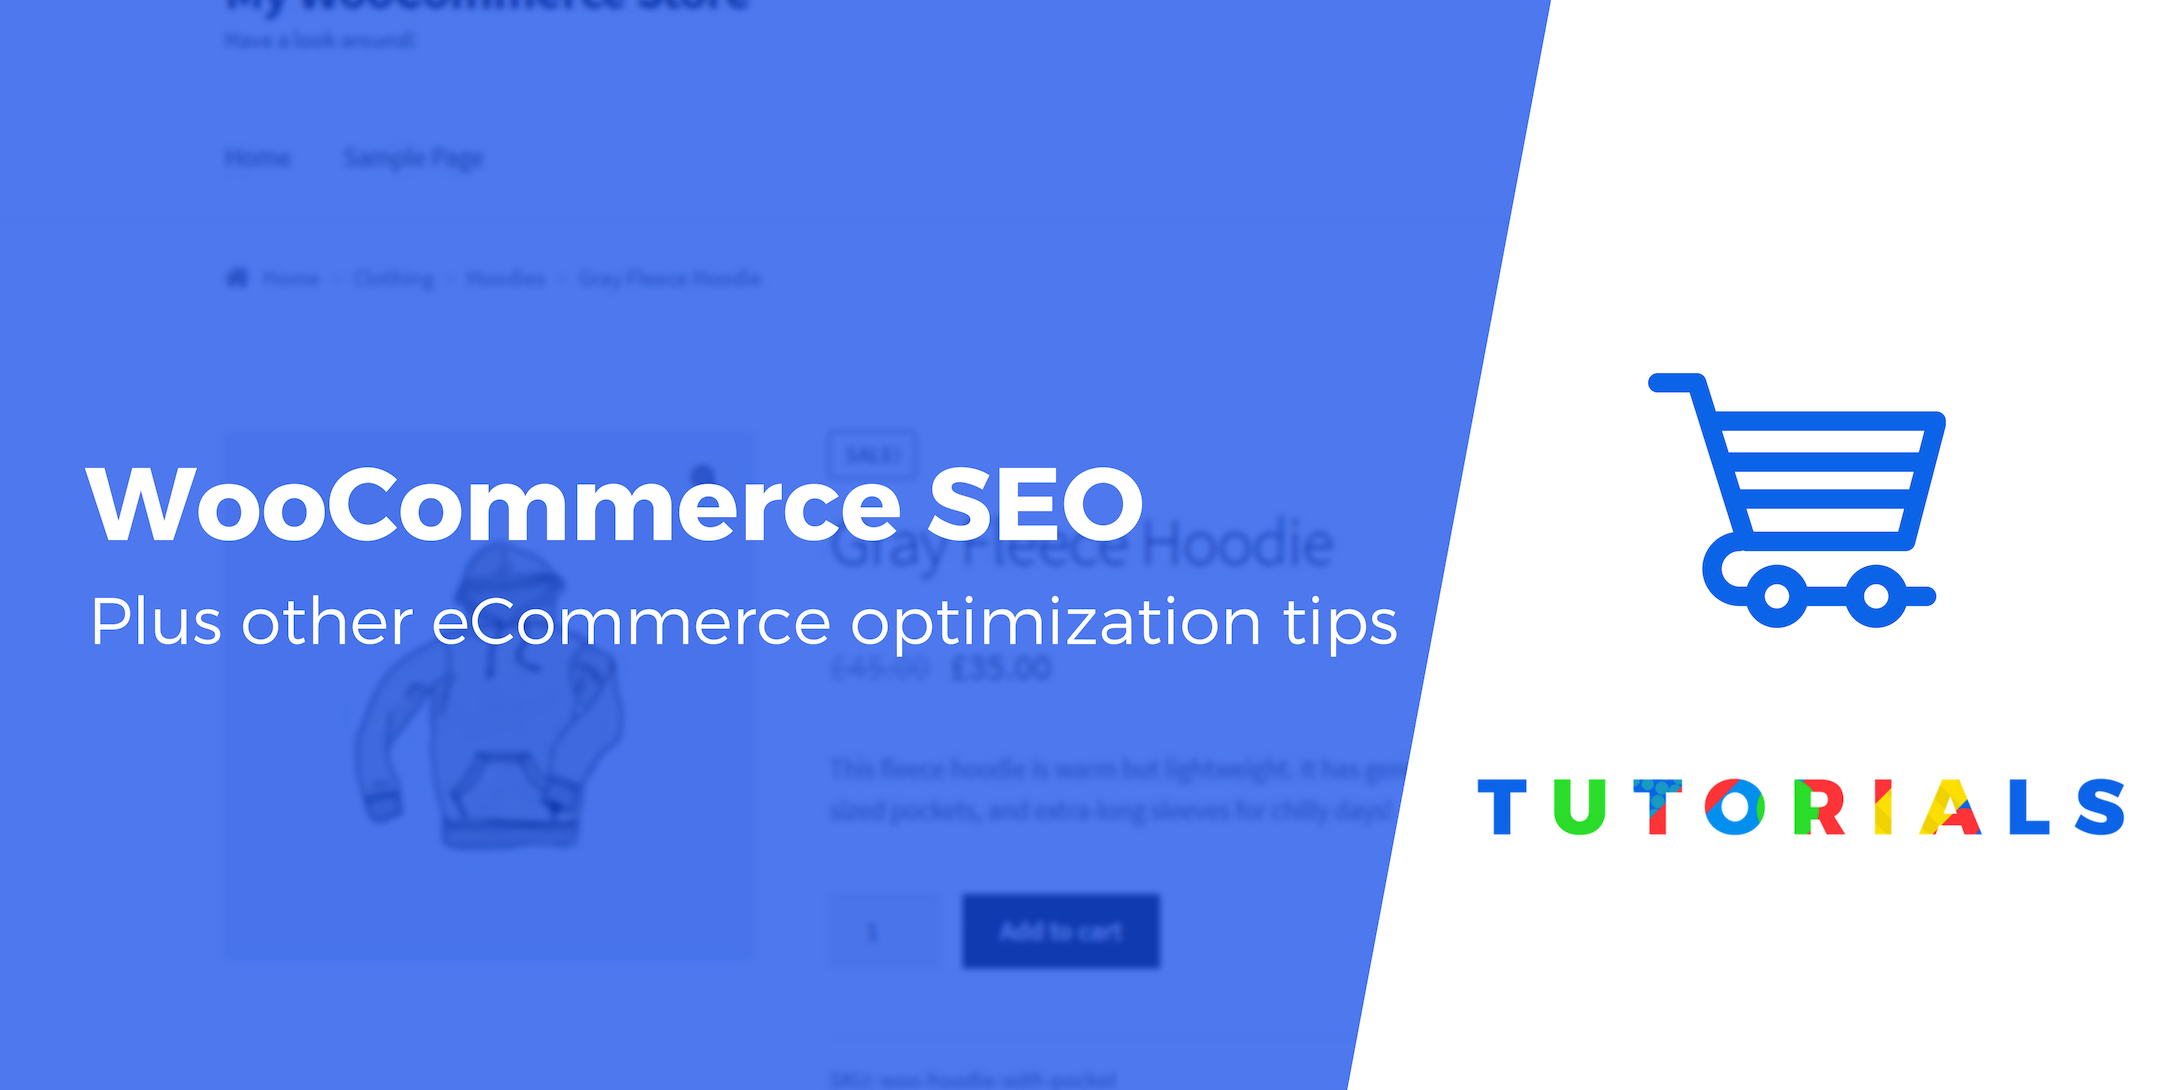 How to Nail WooCommerce SEO, Plus 3 Other Optimization Tips